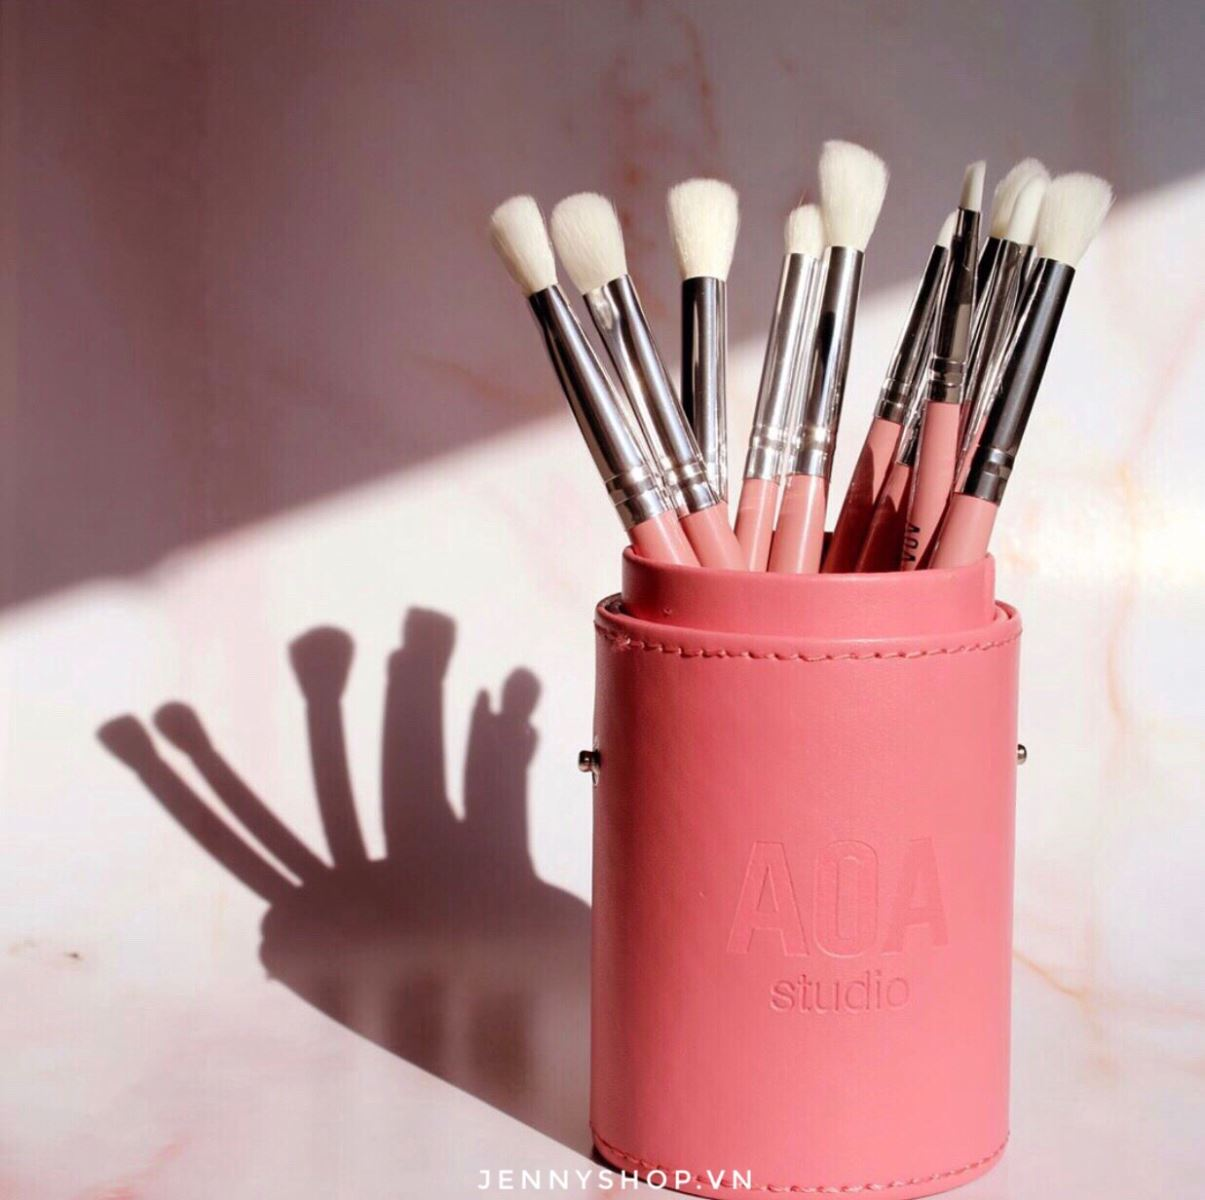 Bộ Cọ Mắt 10c AOA Studio 10-Piece All About Eyes Brush Set